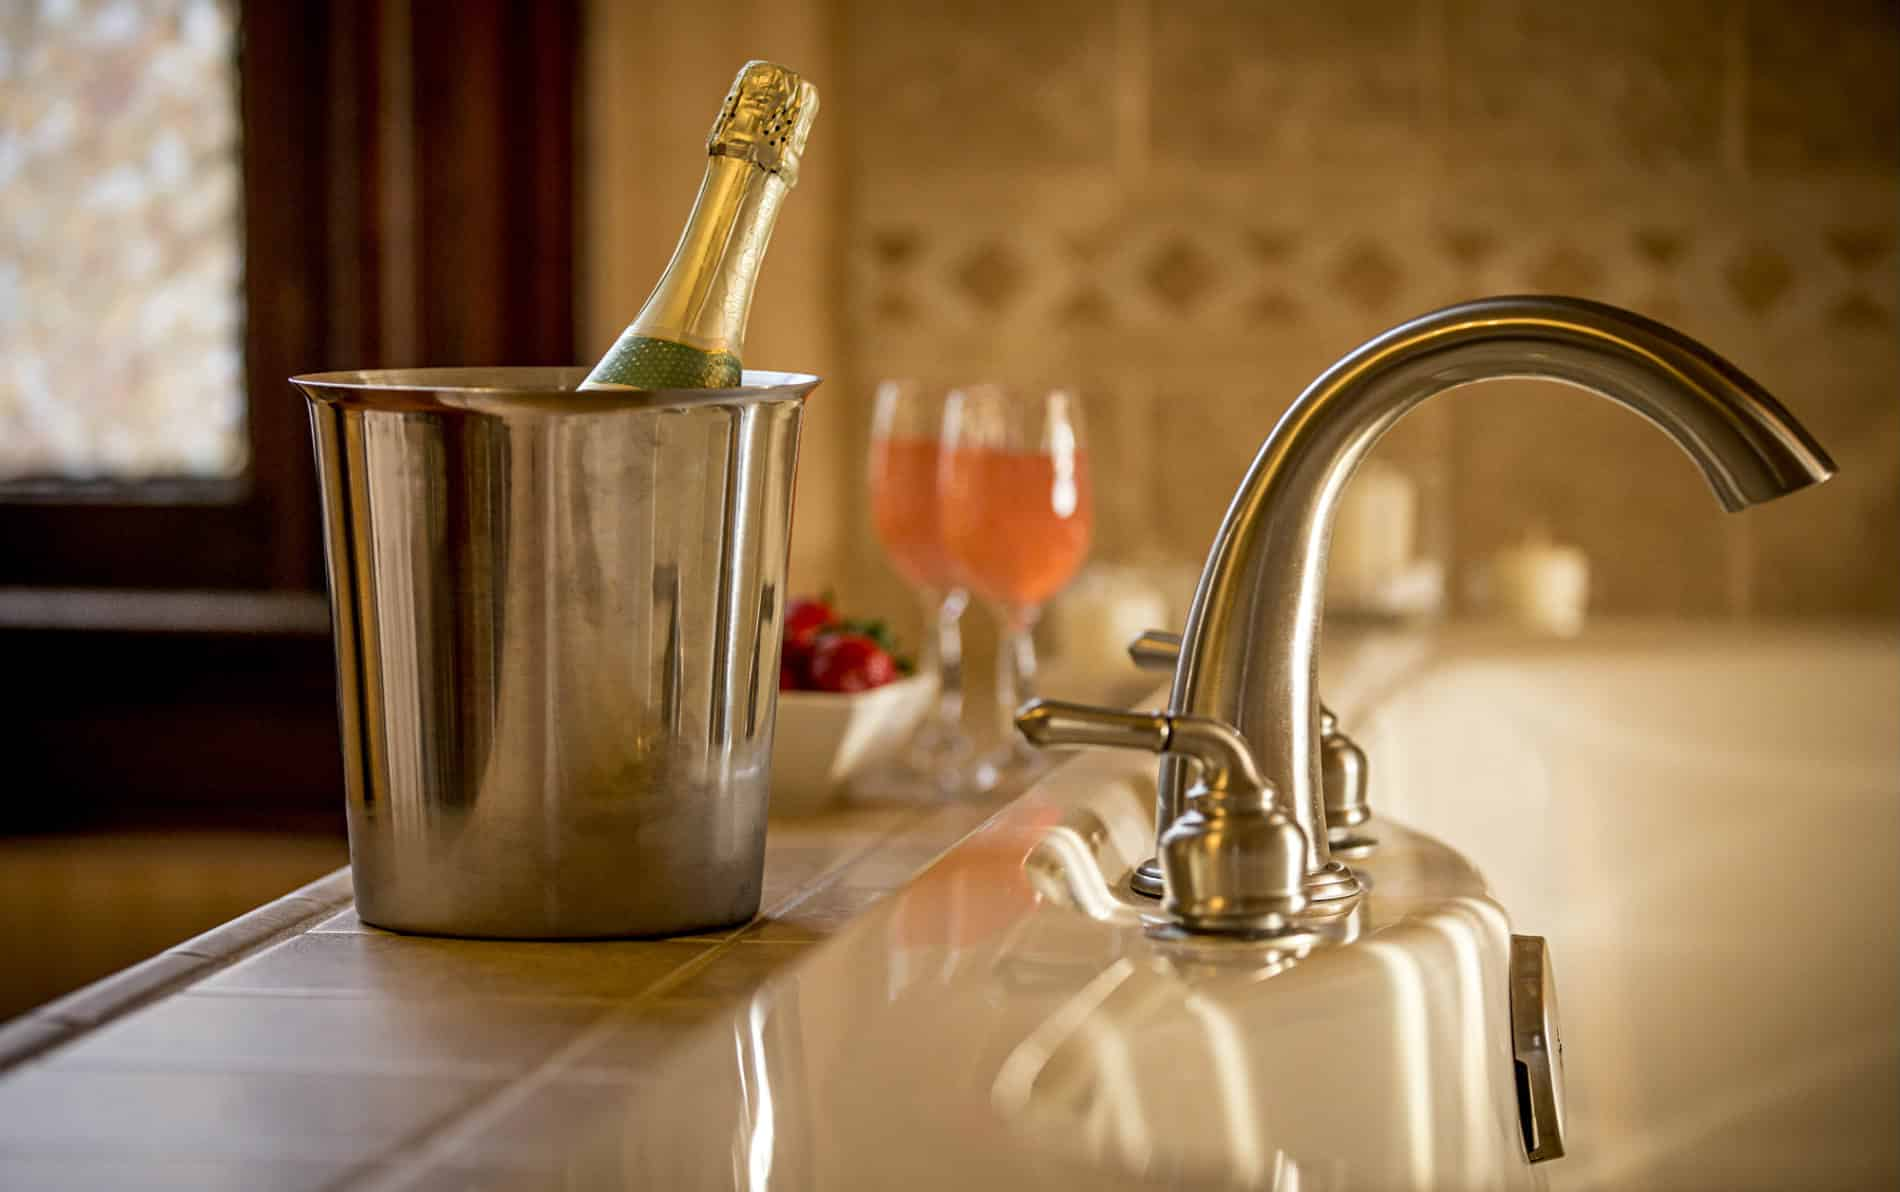 Large tub for two with a silver curved bathtub faucet. Silver bucket with champagne bottle , two glasses of pink champagne.